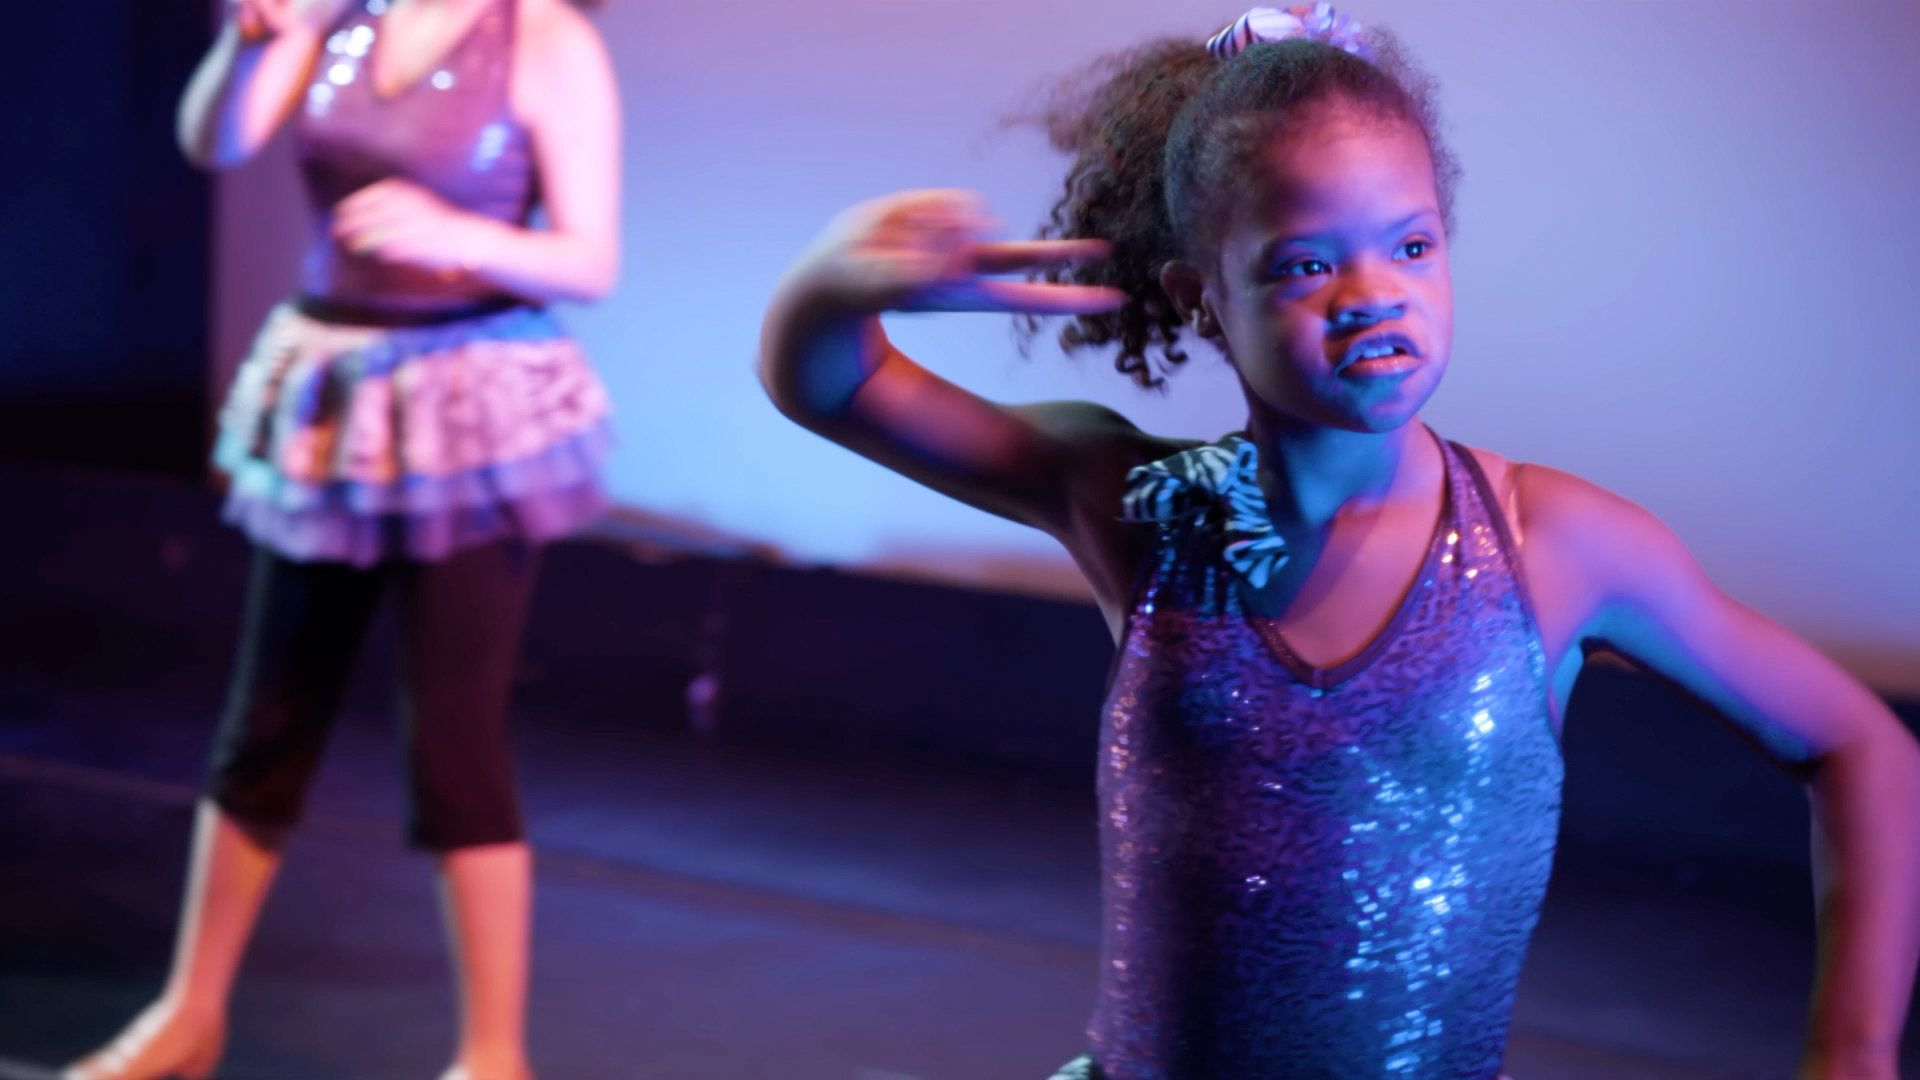 This Dance Studio Inspires Kids With Special Needs To Dance Their Way Through